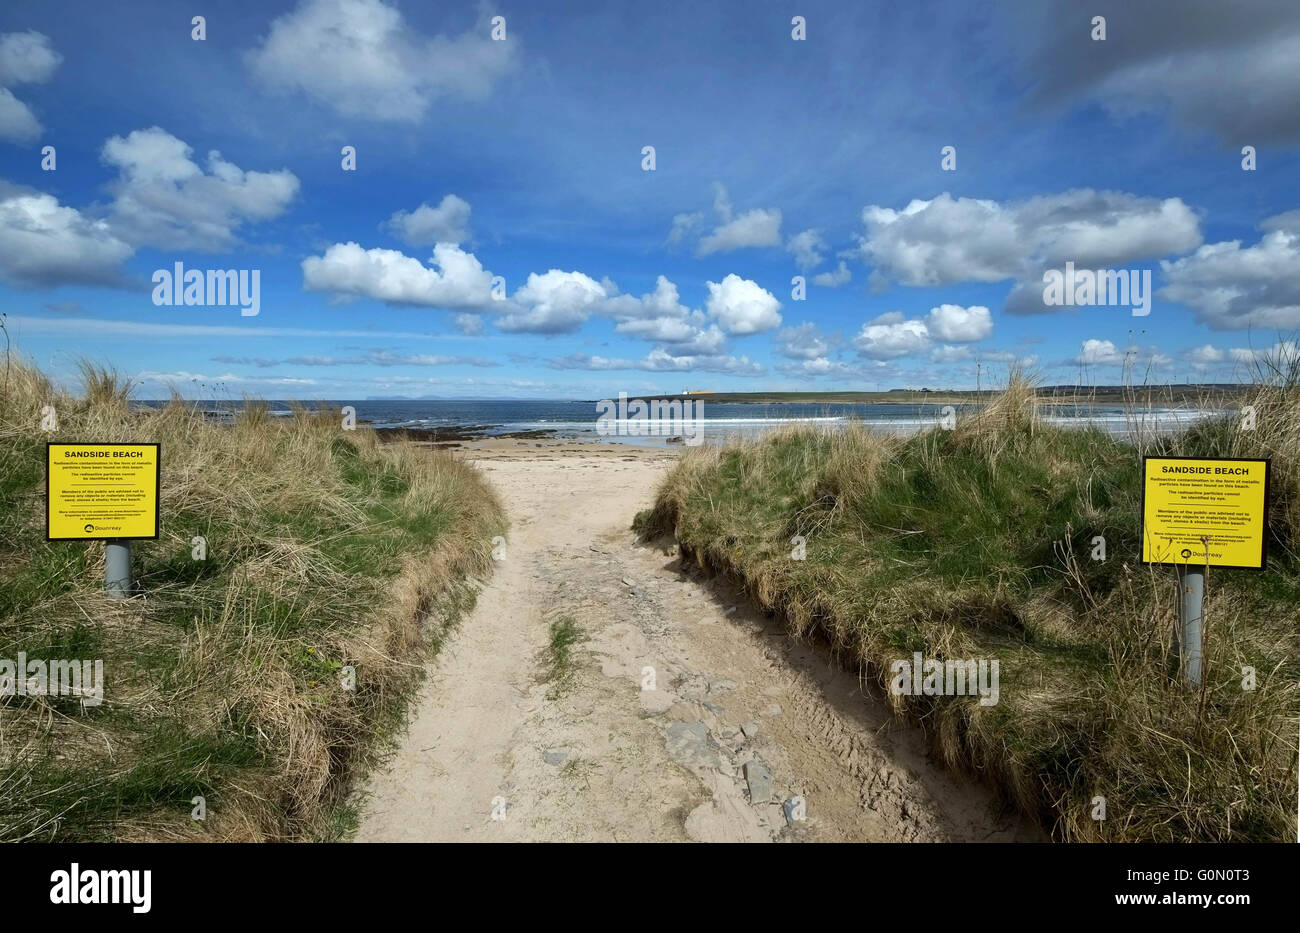 20/04/2016, Sign's warning of radioactive contamination in the form of metallic particles at Sandside beach, - Stock Image